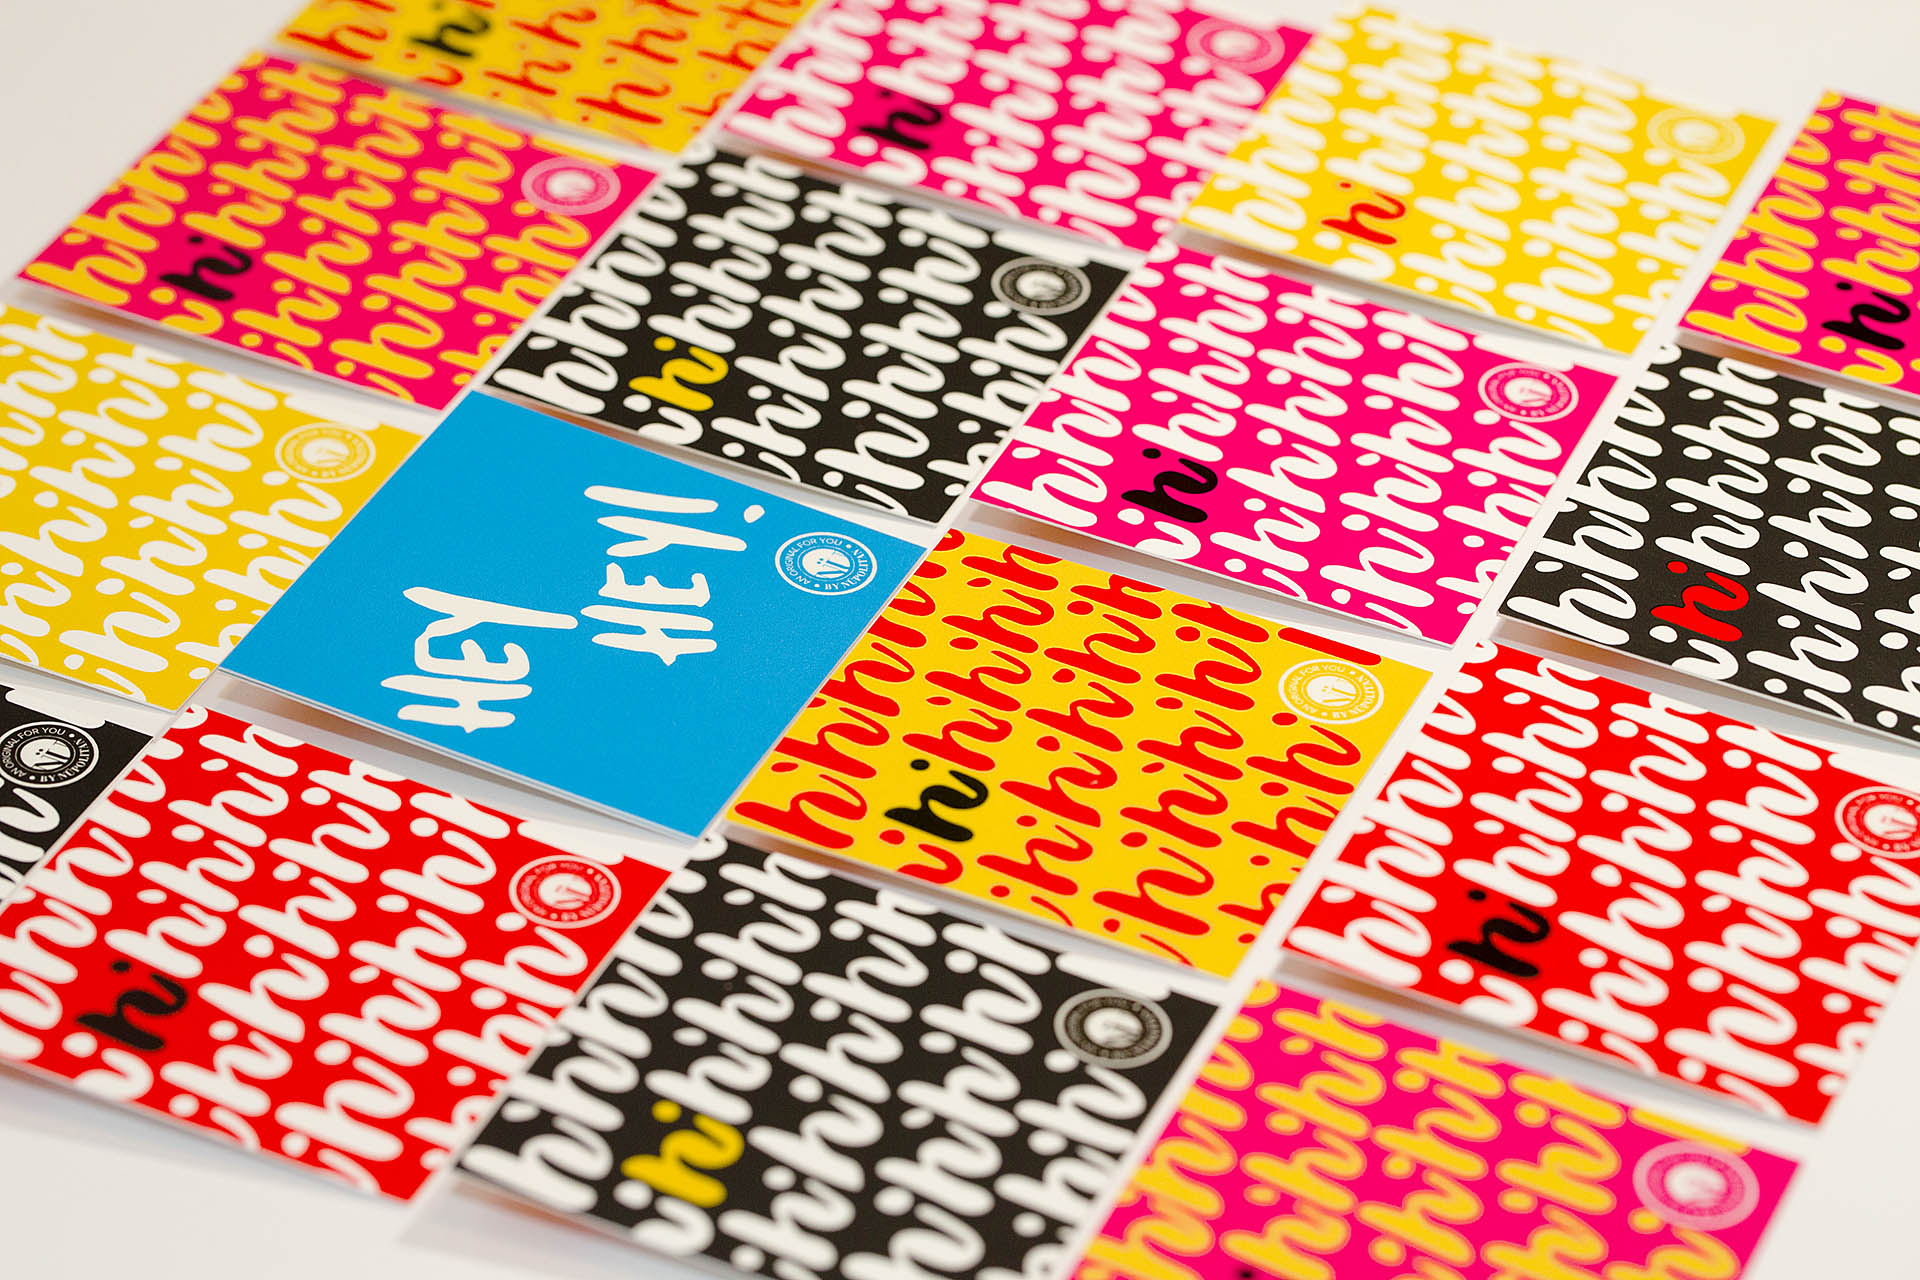 An isometric grid of 16 square, colorful cards on a white background